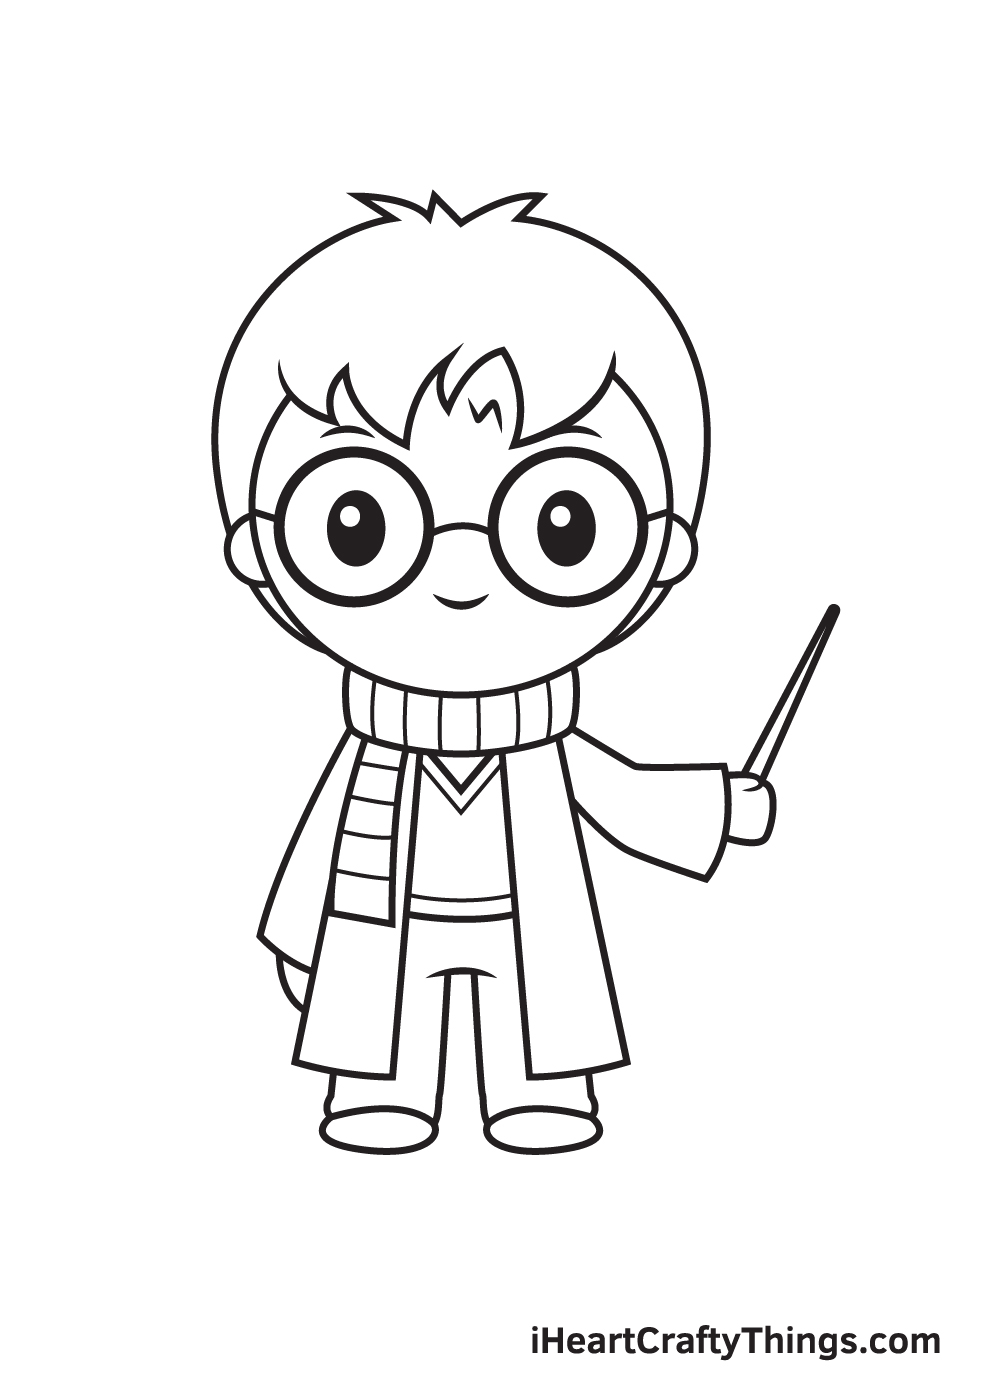 Harry Potter Drawing – Step 9